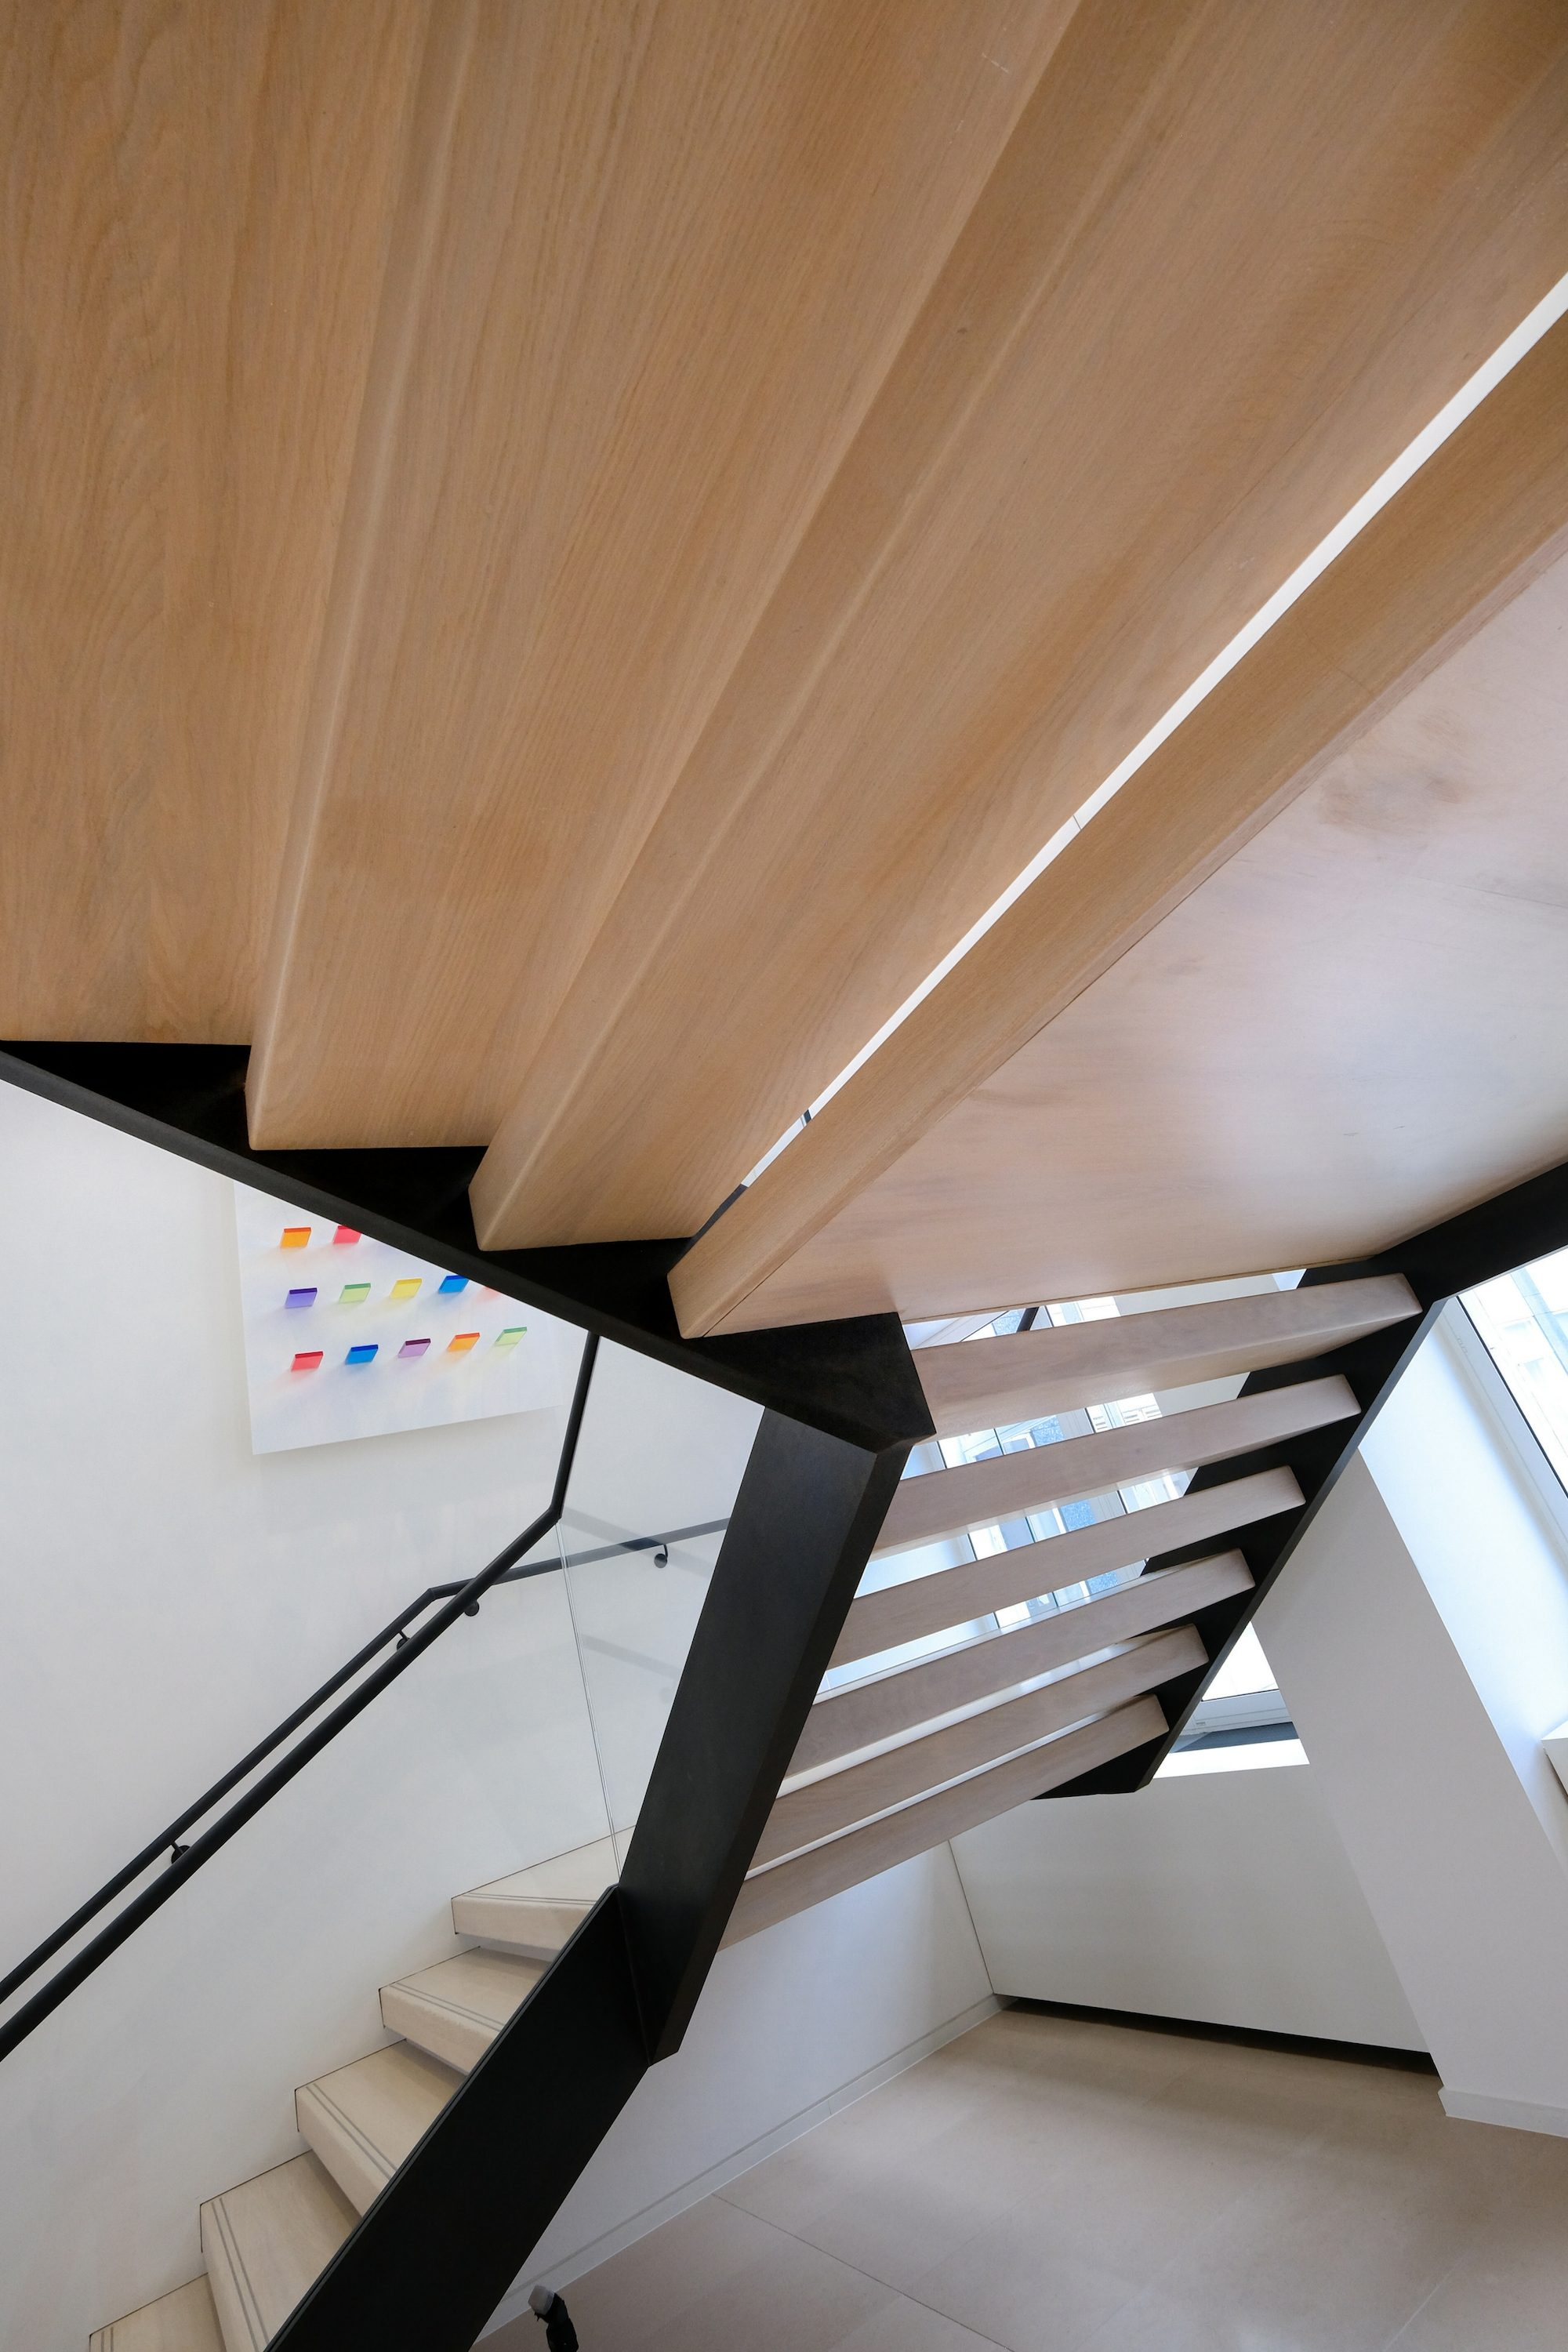 View from below straight stair